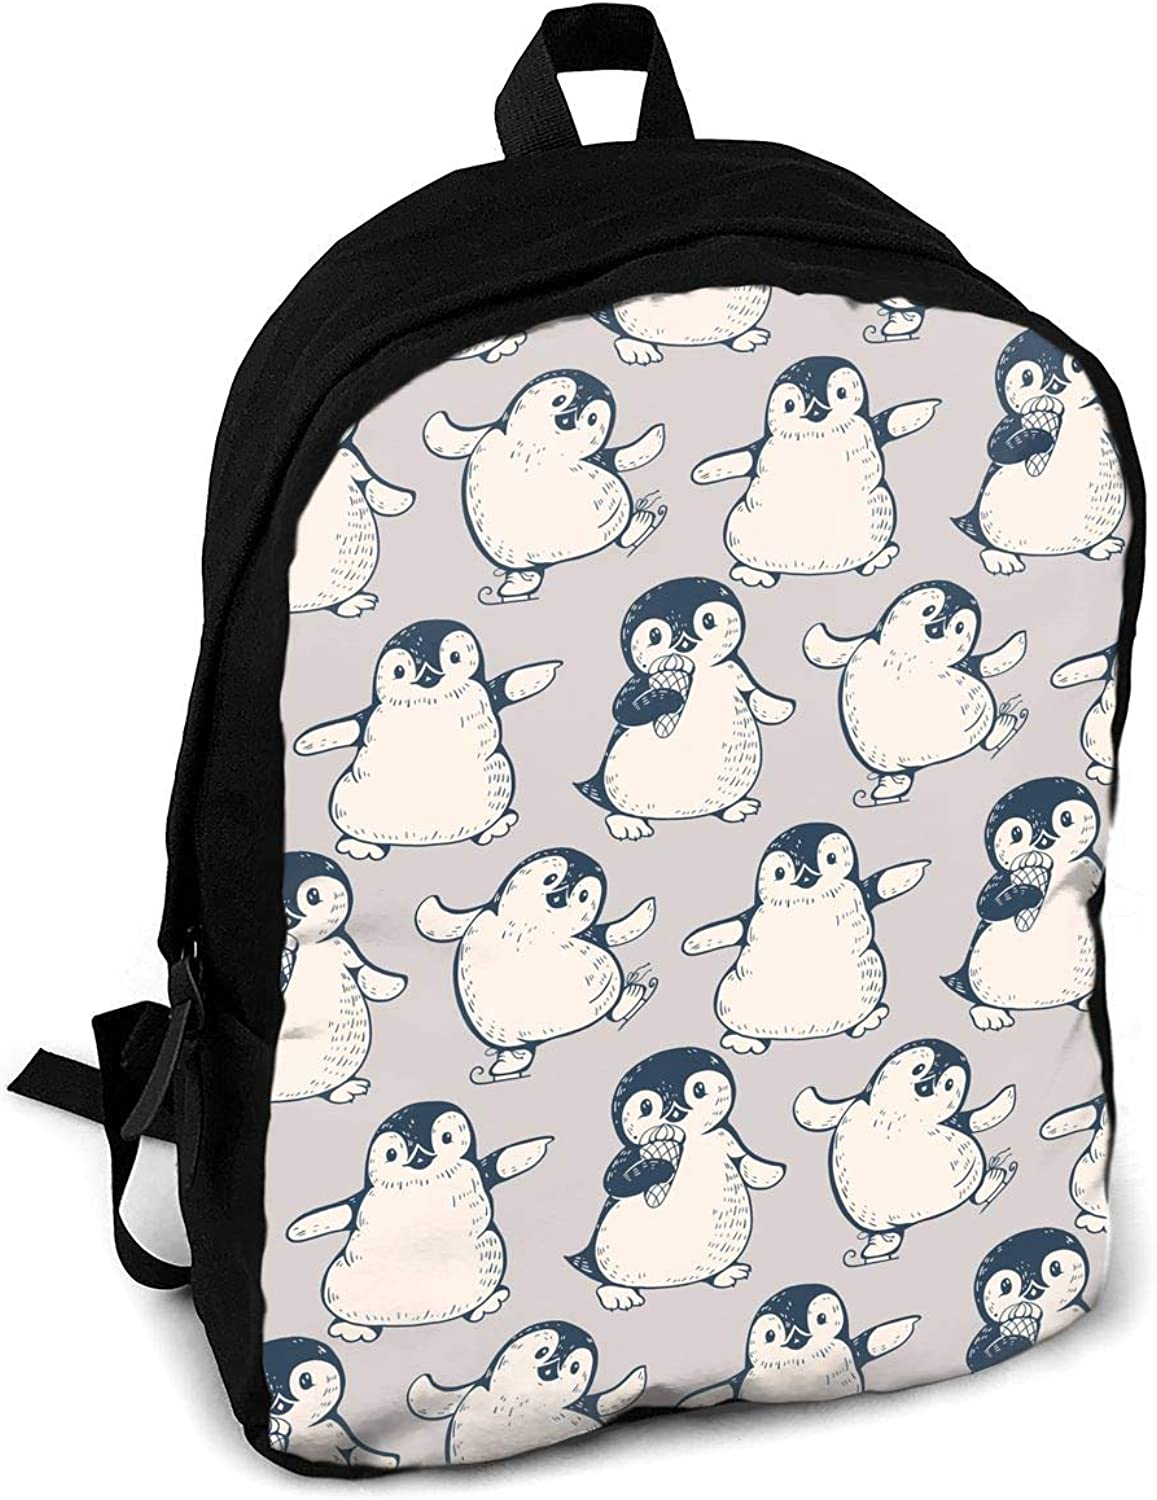 YISHOW Cute Penguins Women Men for Casual School Bag Outdoor Travel Camping Backpack